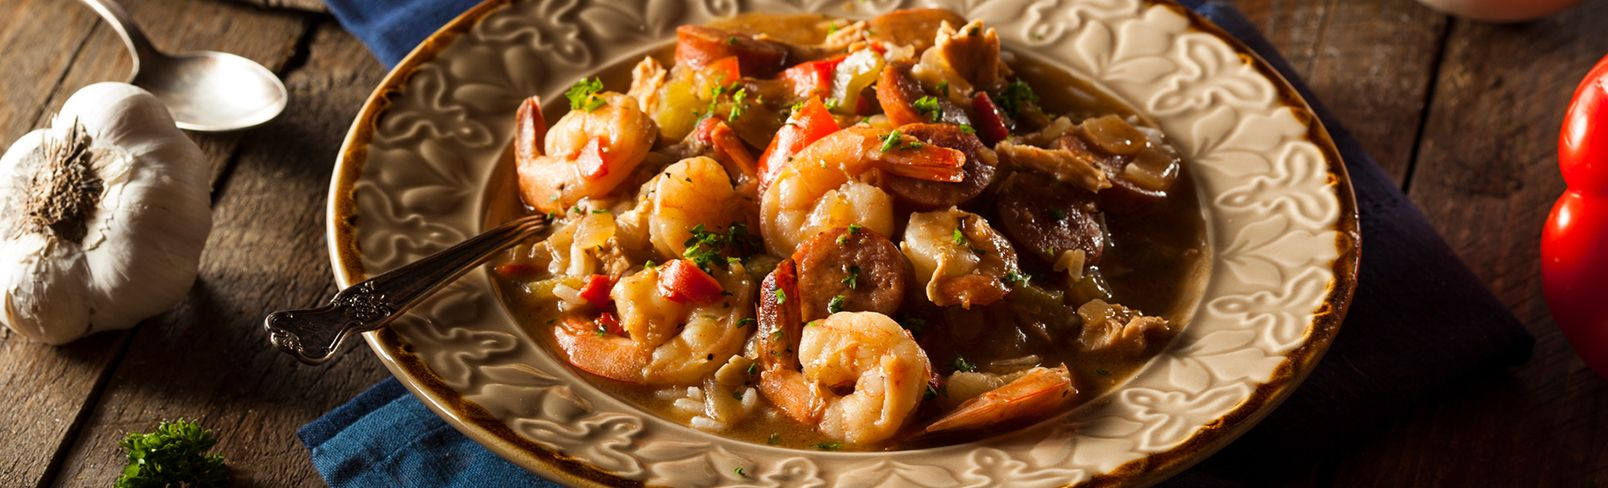 High Quality Organics Express Cajun Food shrimp gumbo